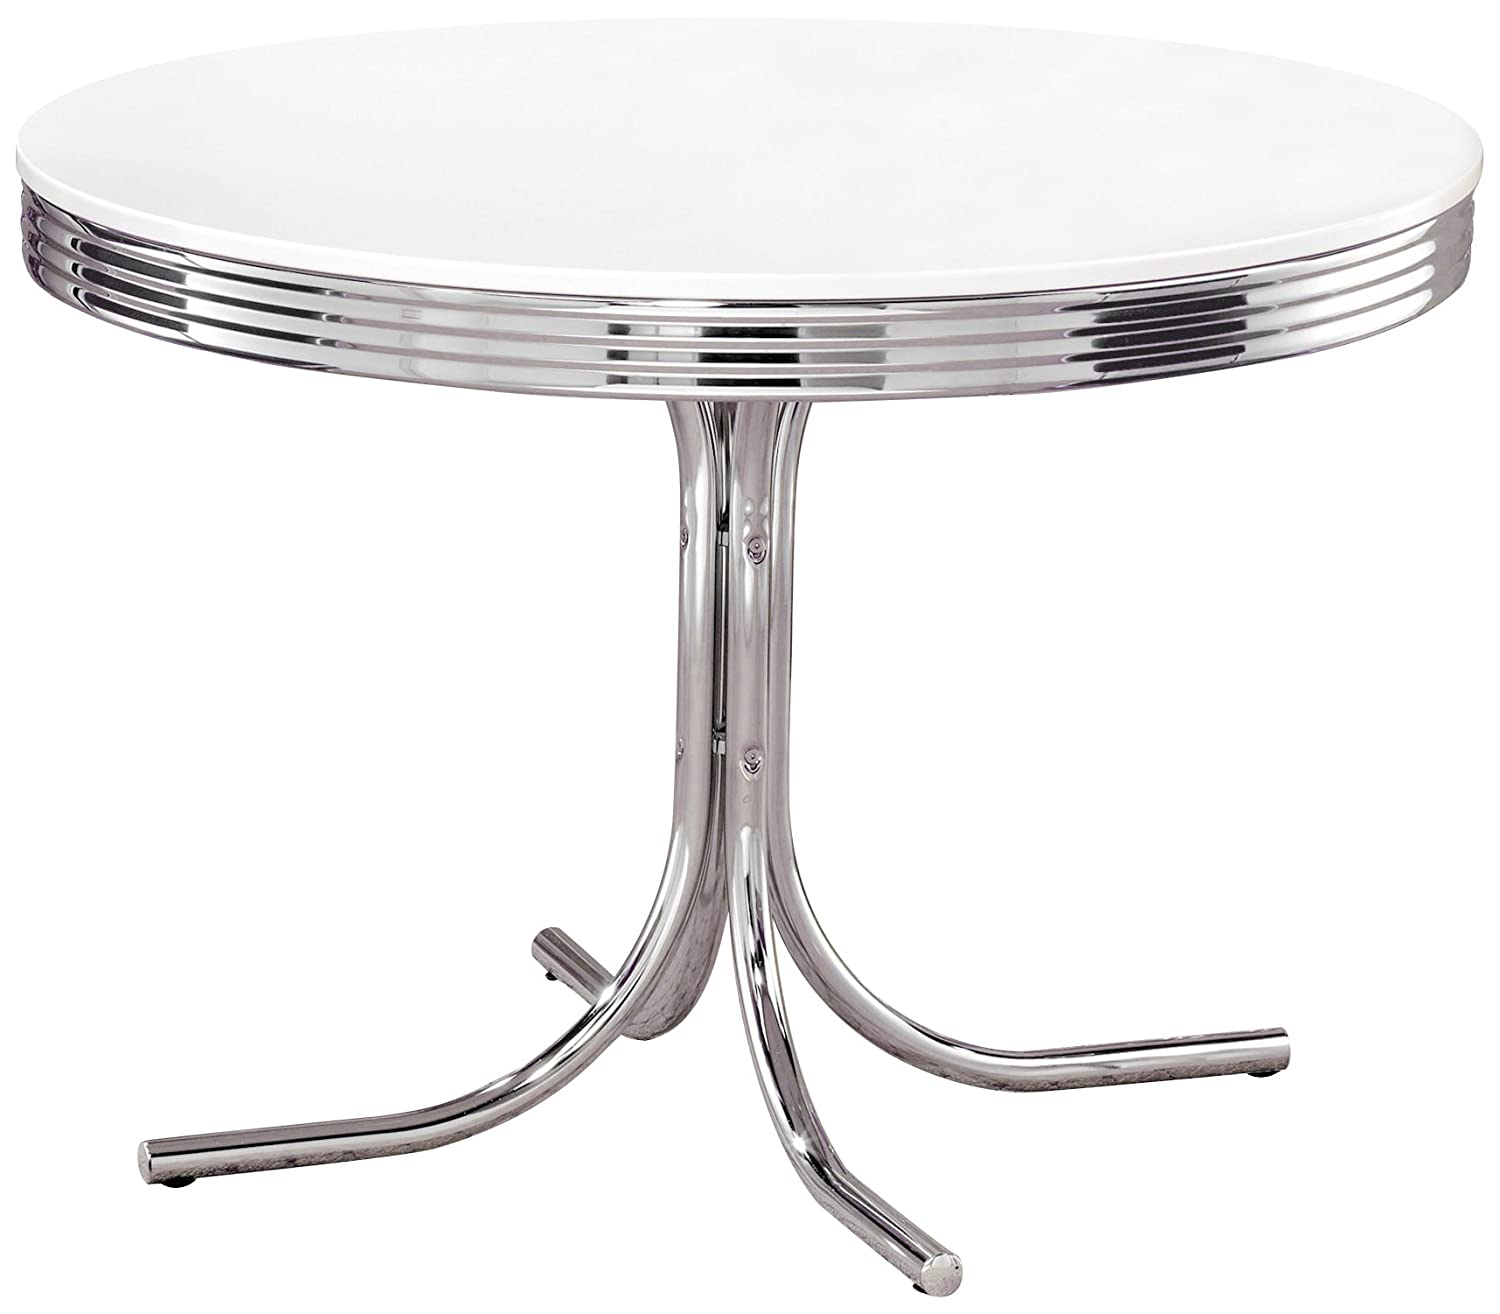 Amazon.com - Coaster Retro Round Dining Kitchen Table in Chrome ...